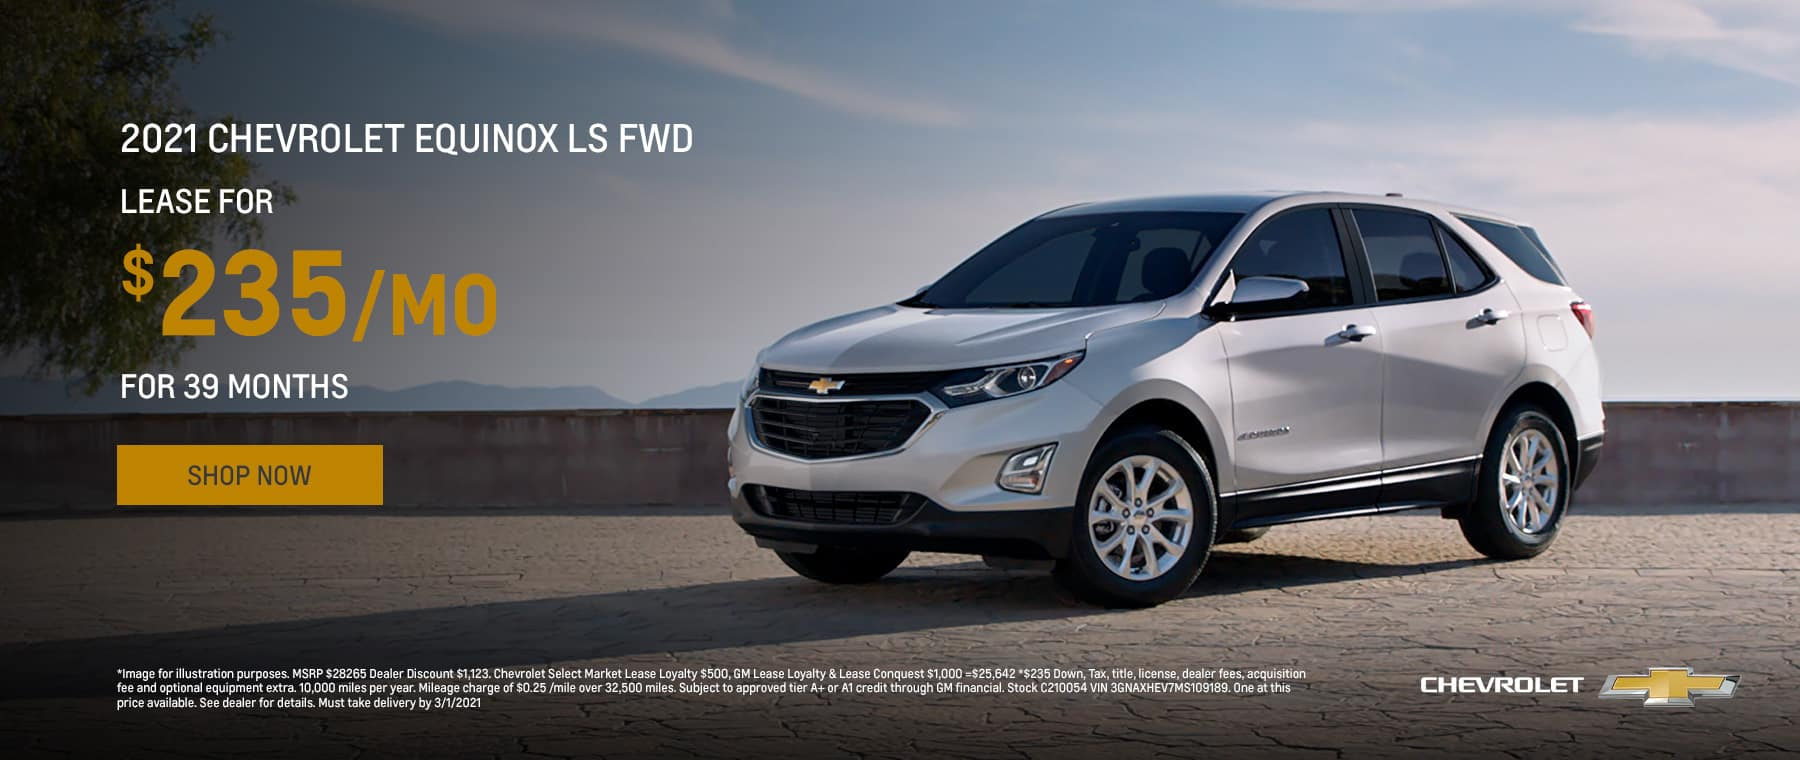 2021 Chevrolet Equinox LS FWD Lease for $235/mo for 36 mos